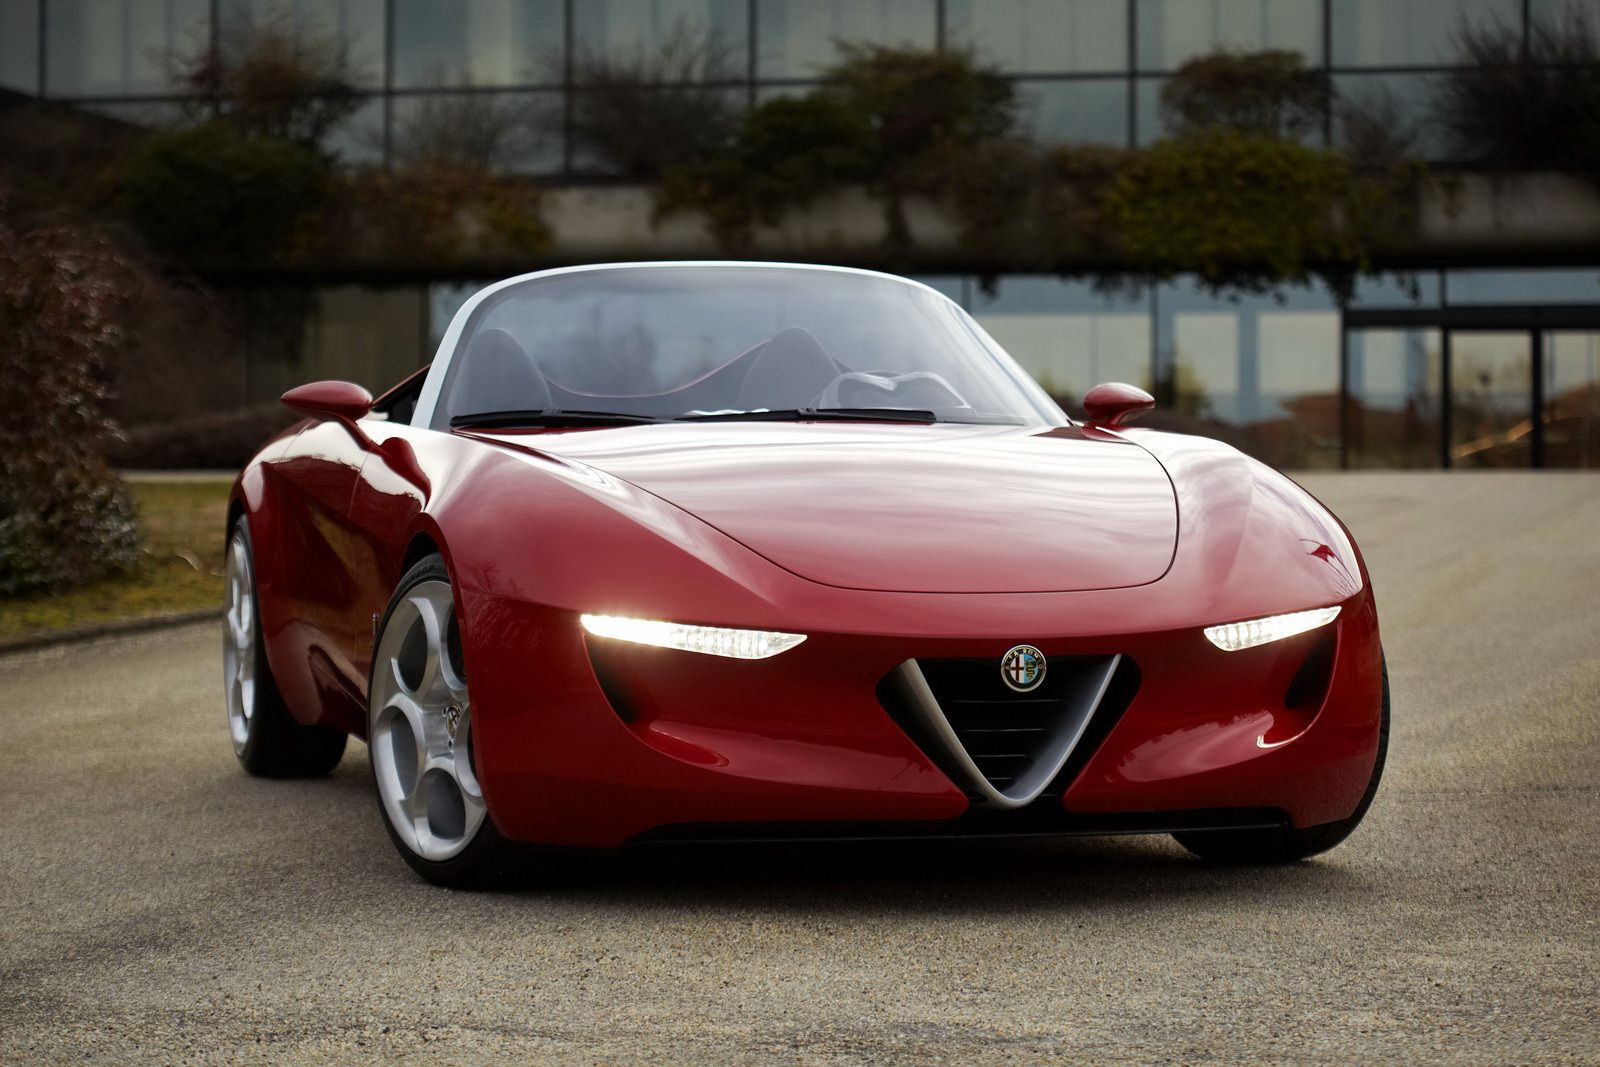 Pininfarina Alfa Romeo Spider High Resolution Image Wallpapers HD